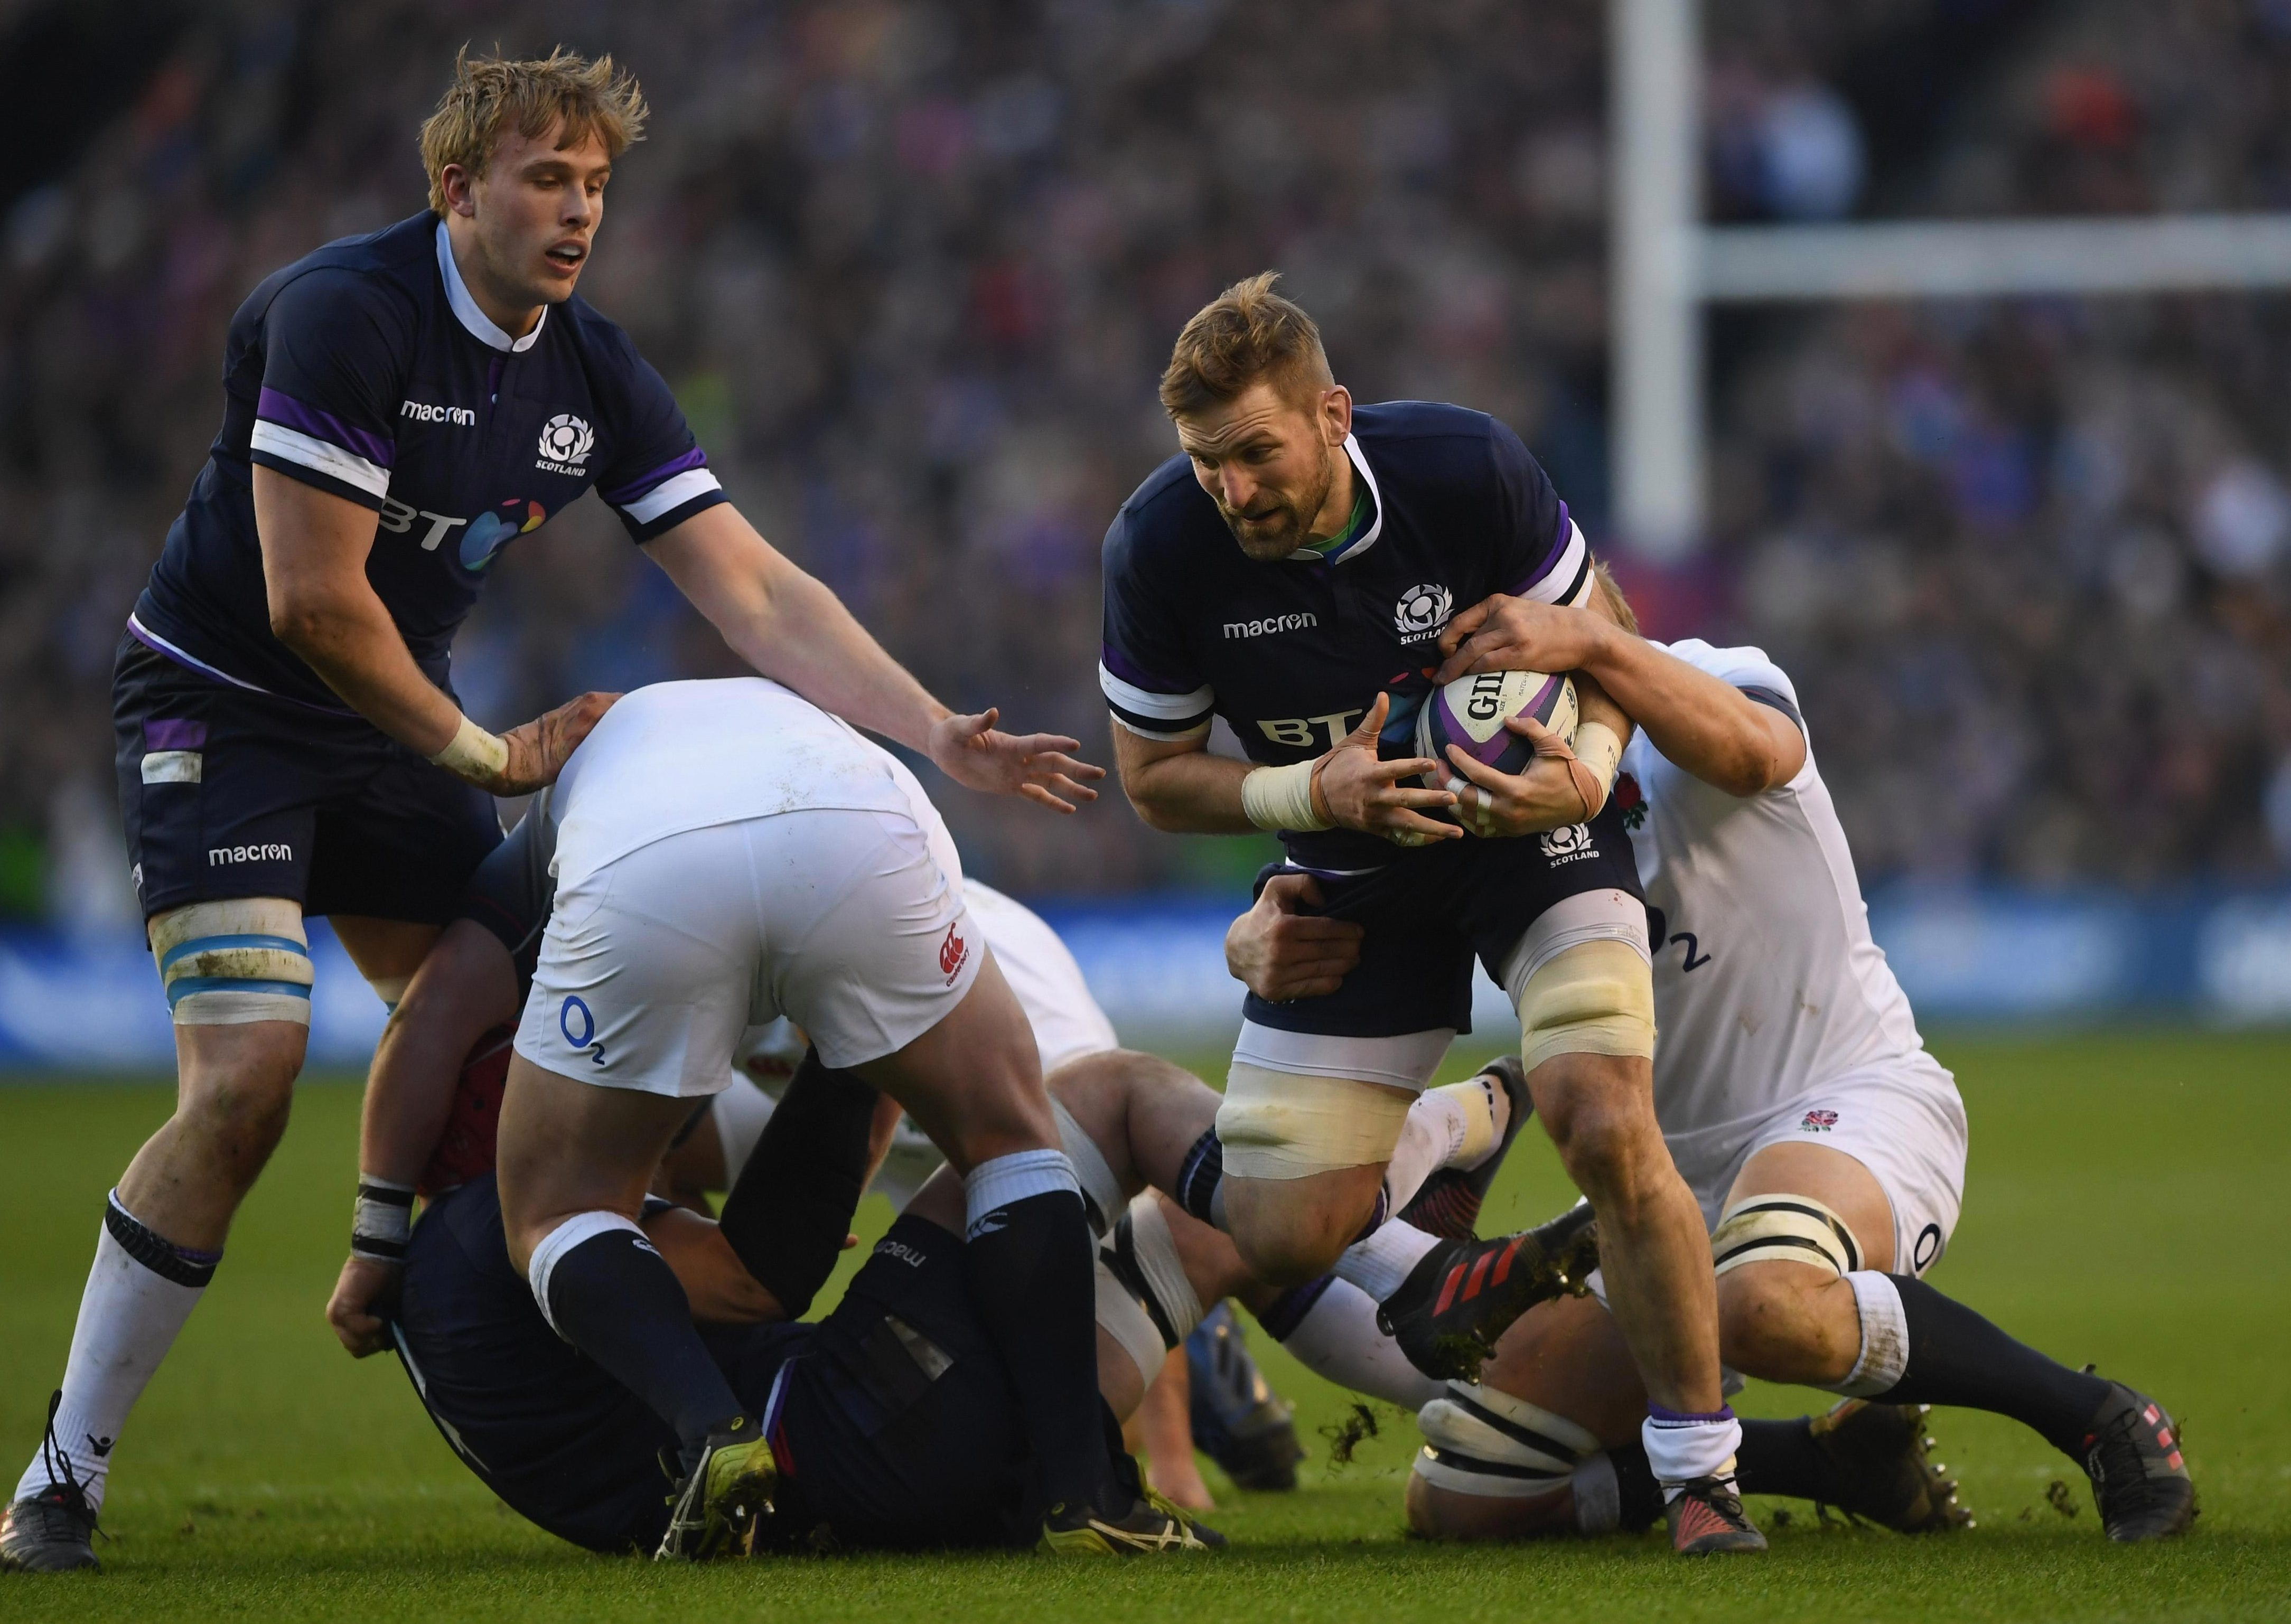 Scotland star John Barclay is tackled by Joe Launchbury but England mostly struggled against the fired-up home side on Saturday